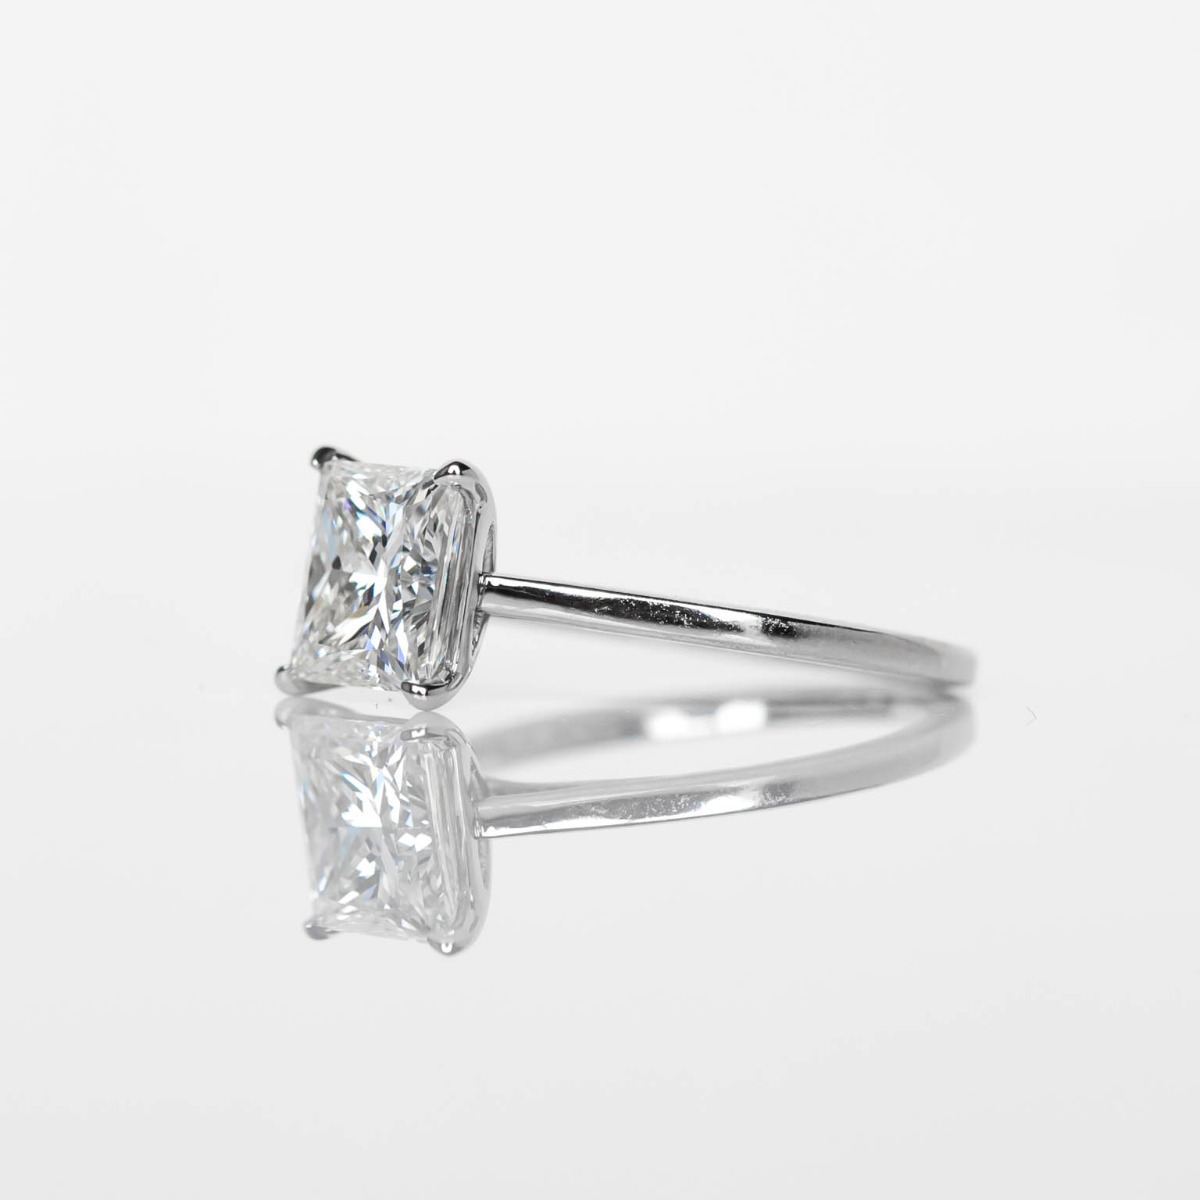 DBK Classic Solitaire Setting For Princess Cut Center Stone in White Gold